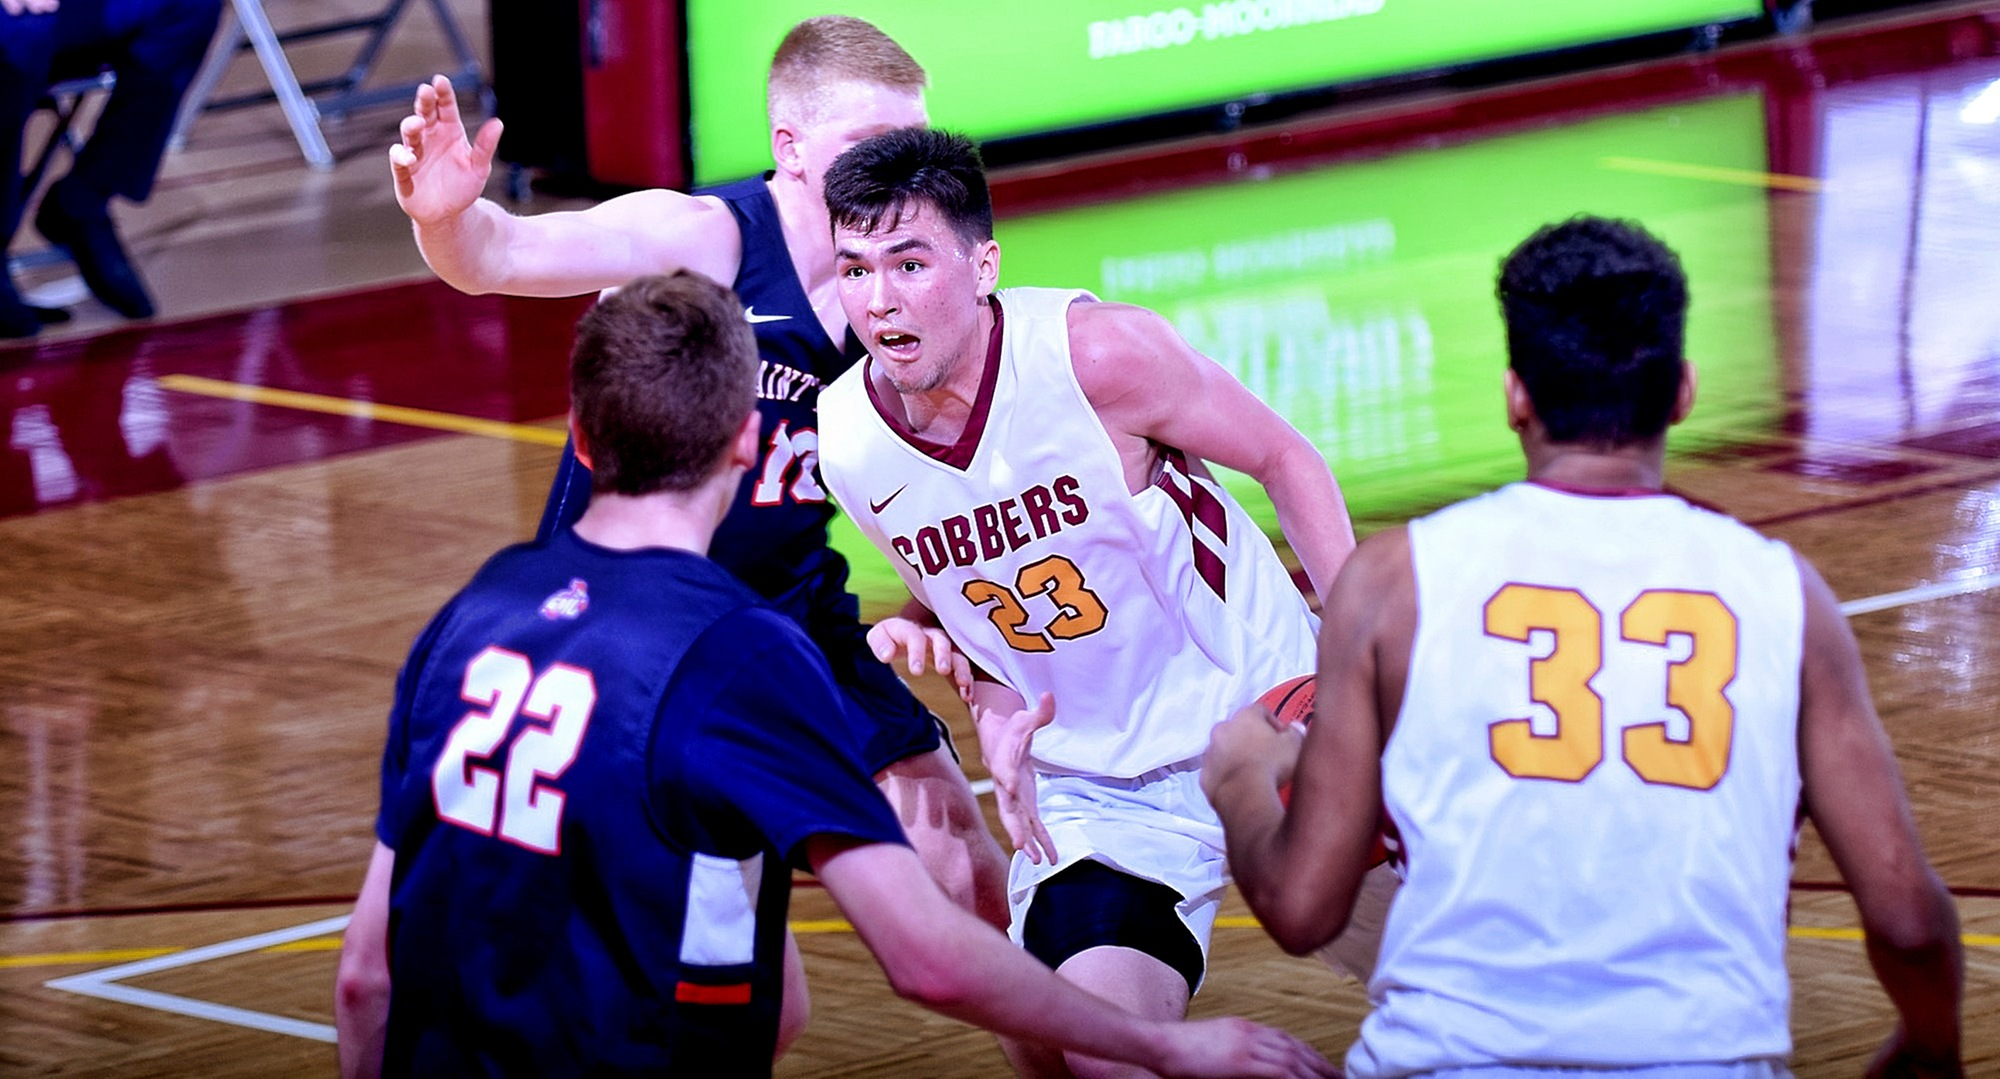 Senior Jordan Davis drives to the basket in the second half against St. Mary's for two of his team-high 18 points in the Cobbers' 67-60 win.